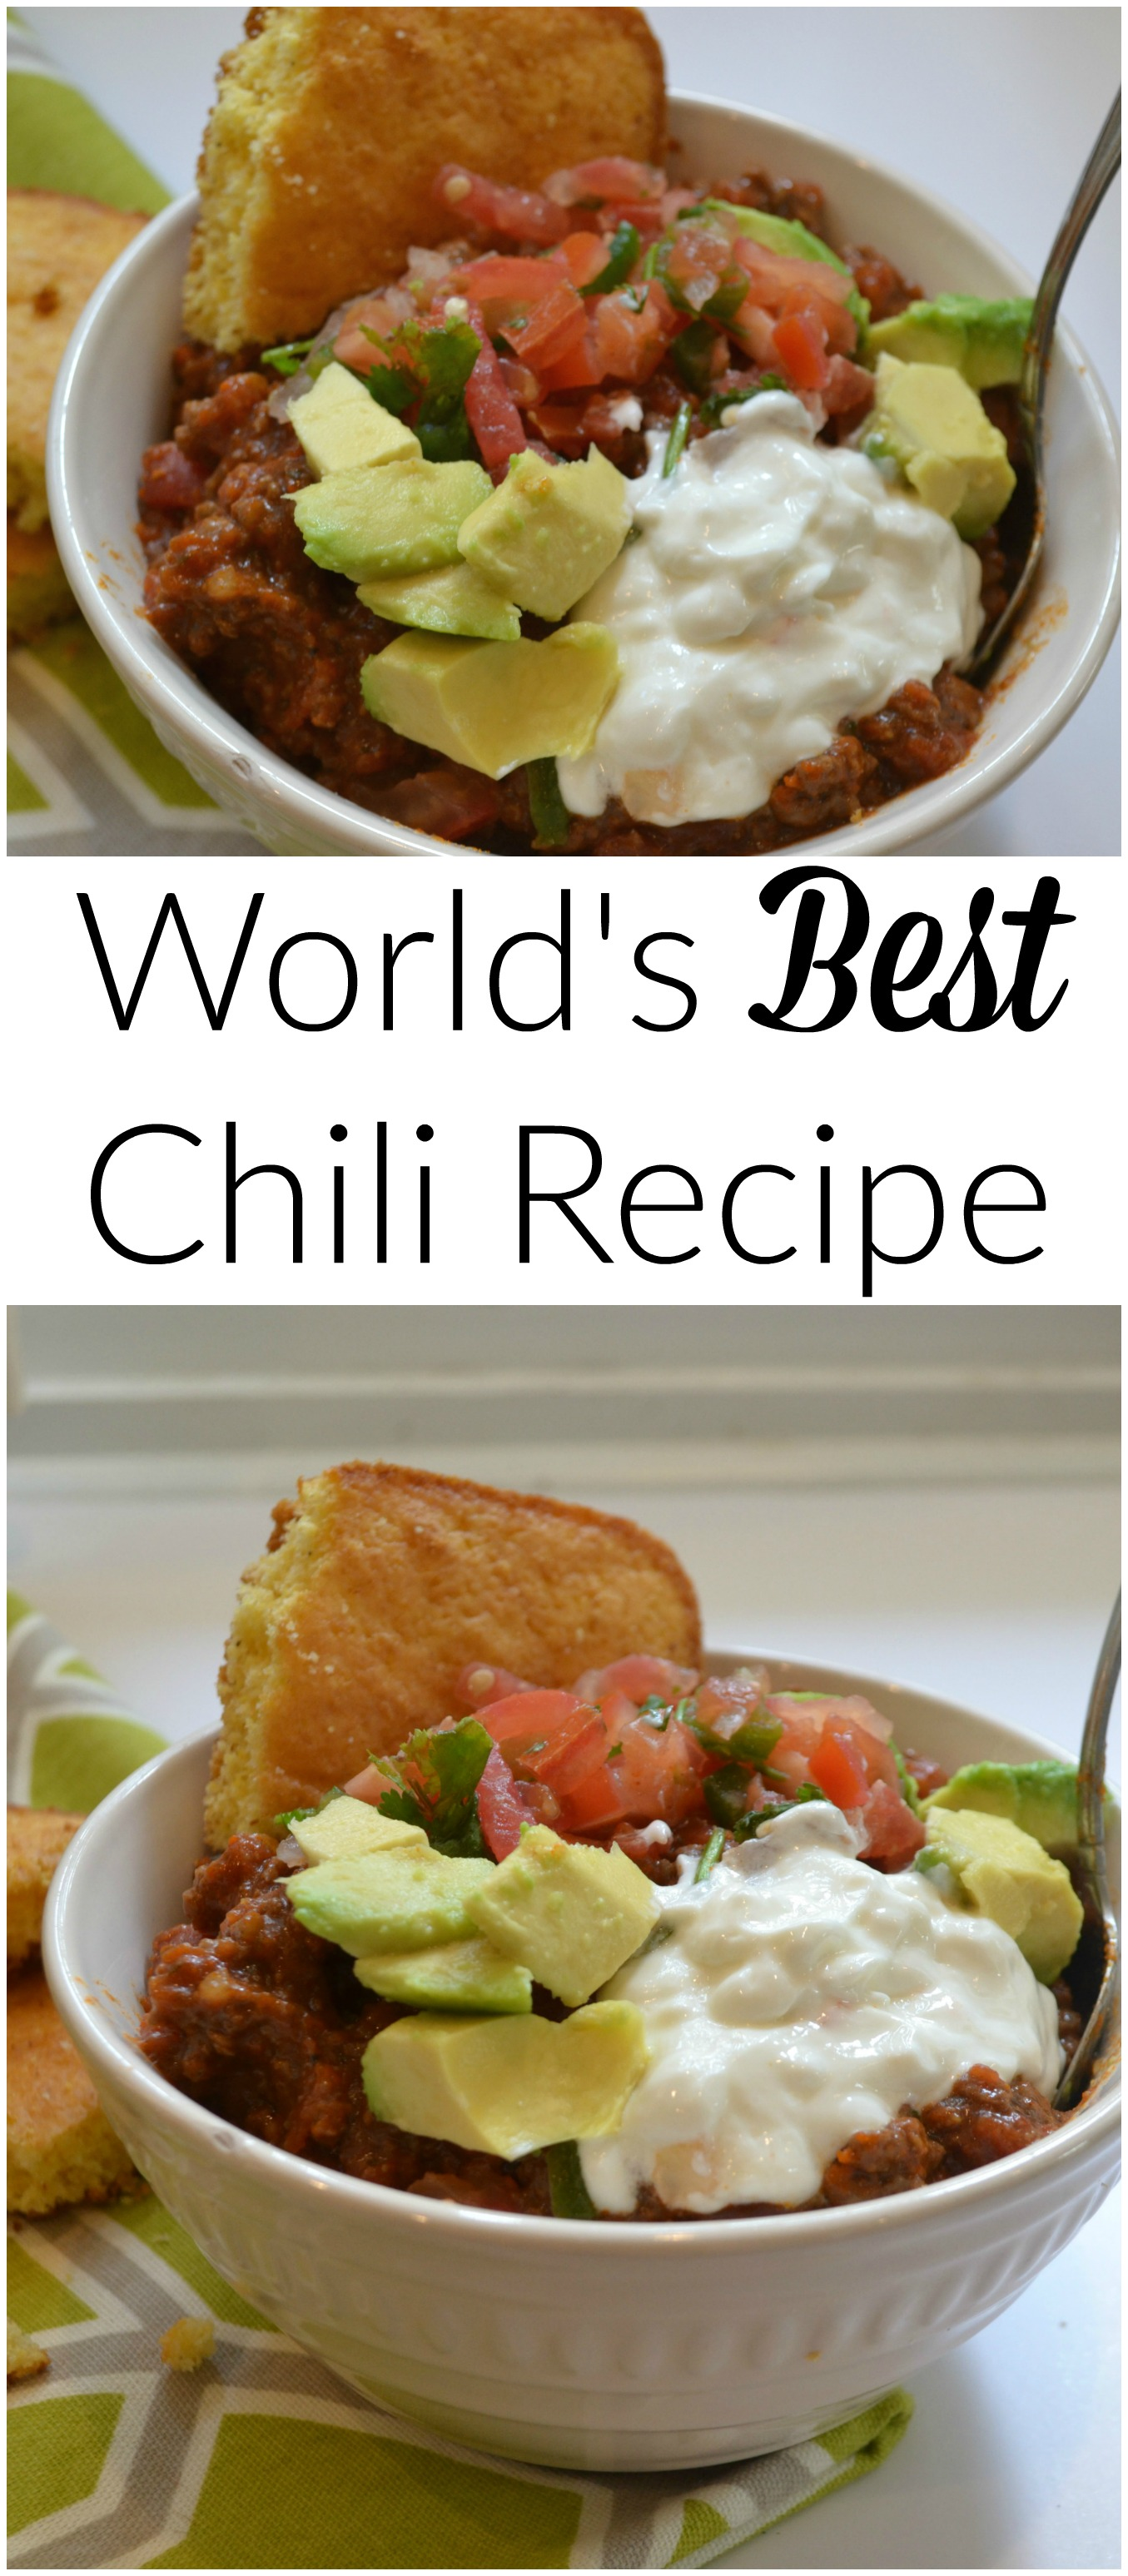 World's Best Chili Recipe